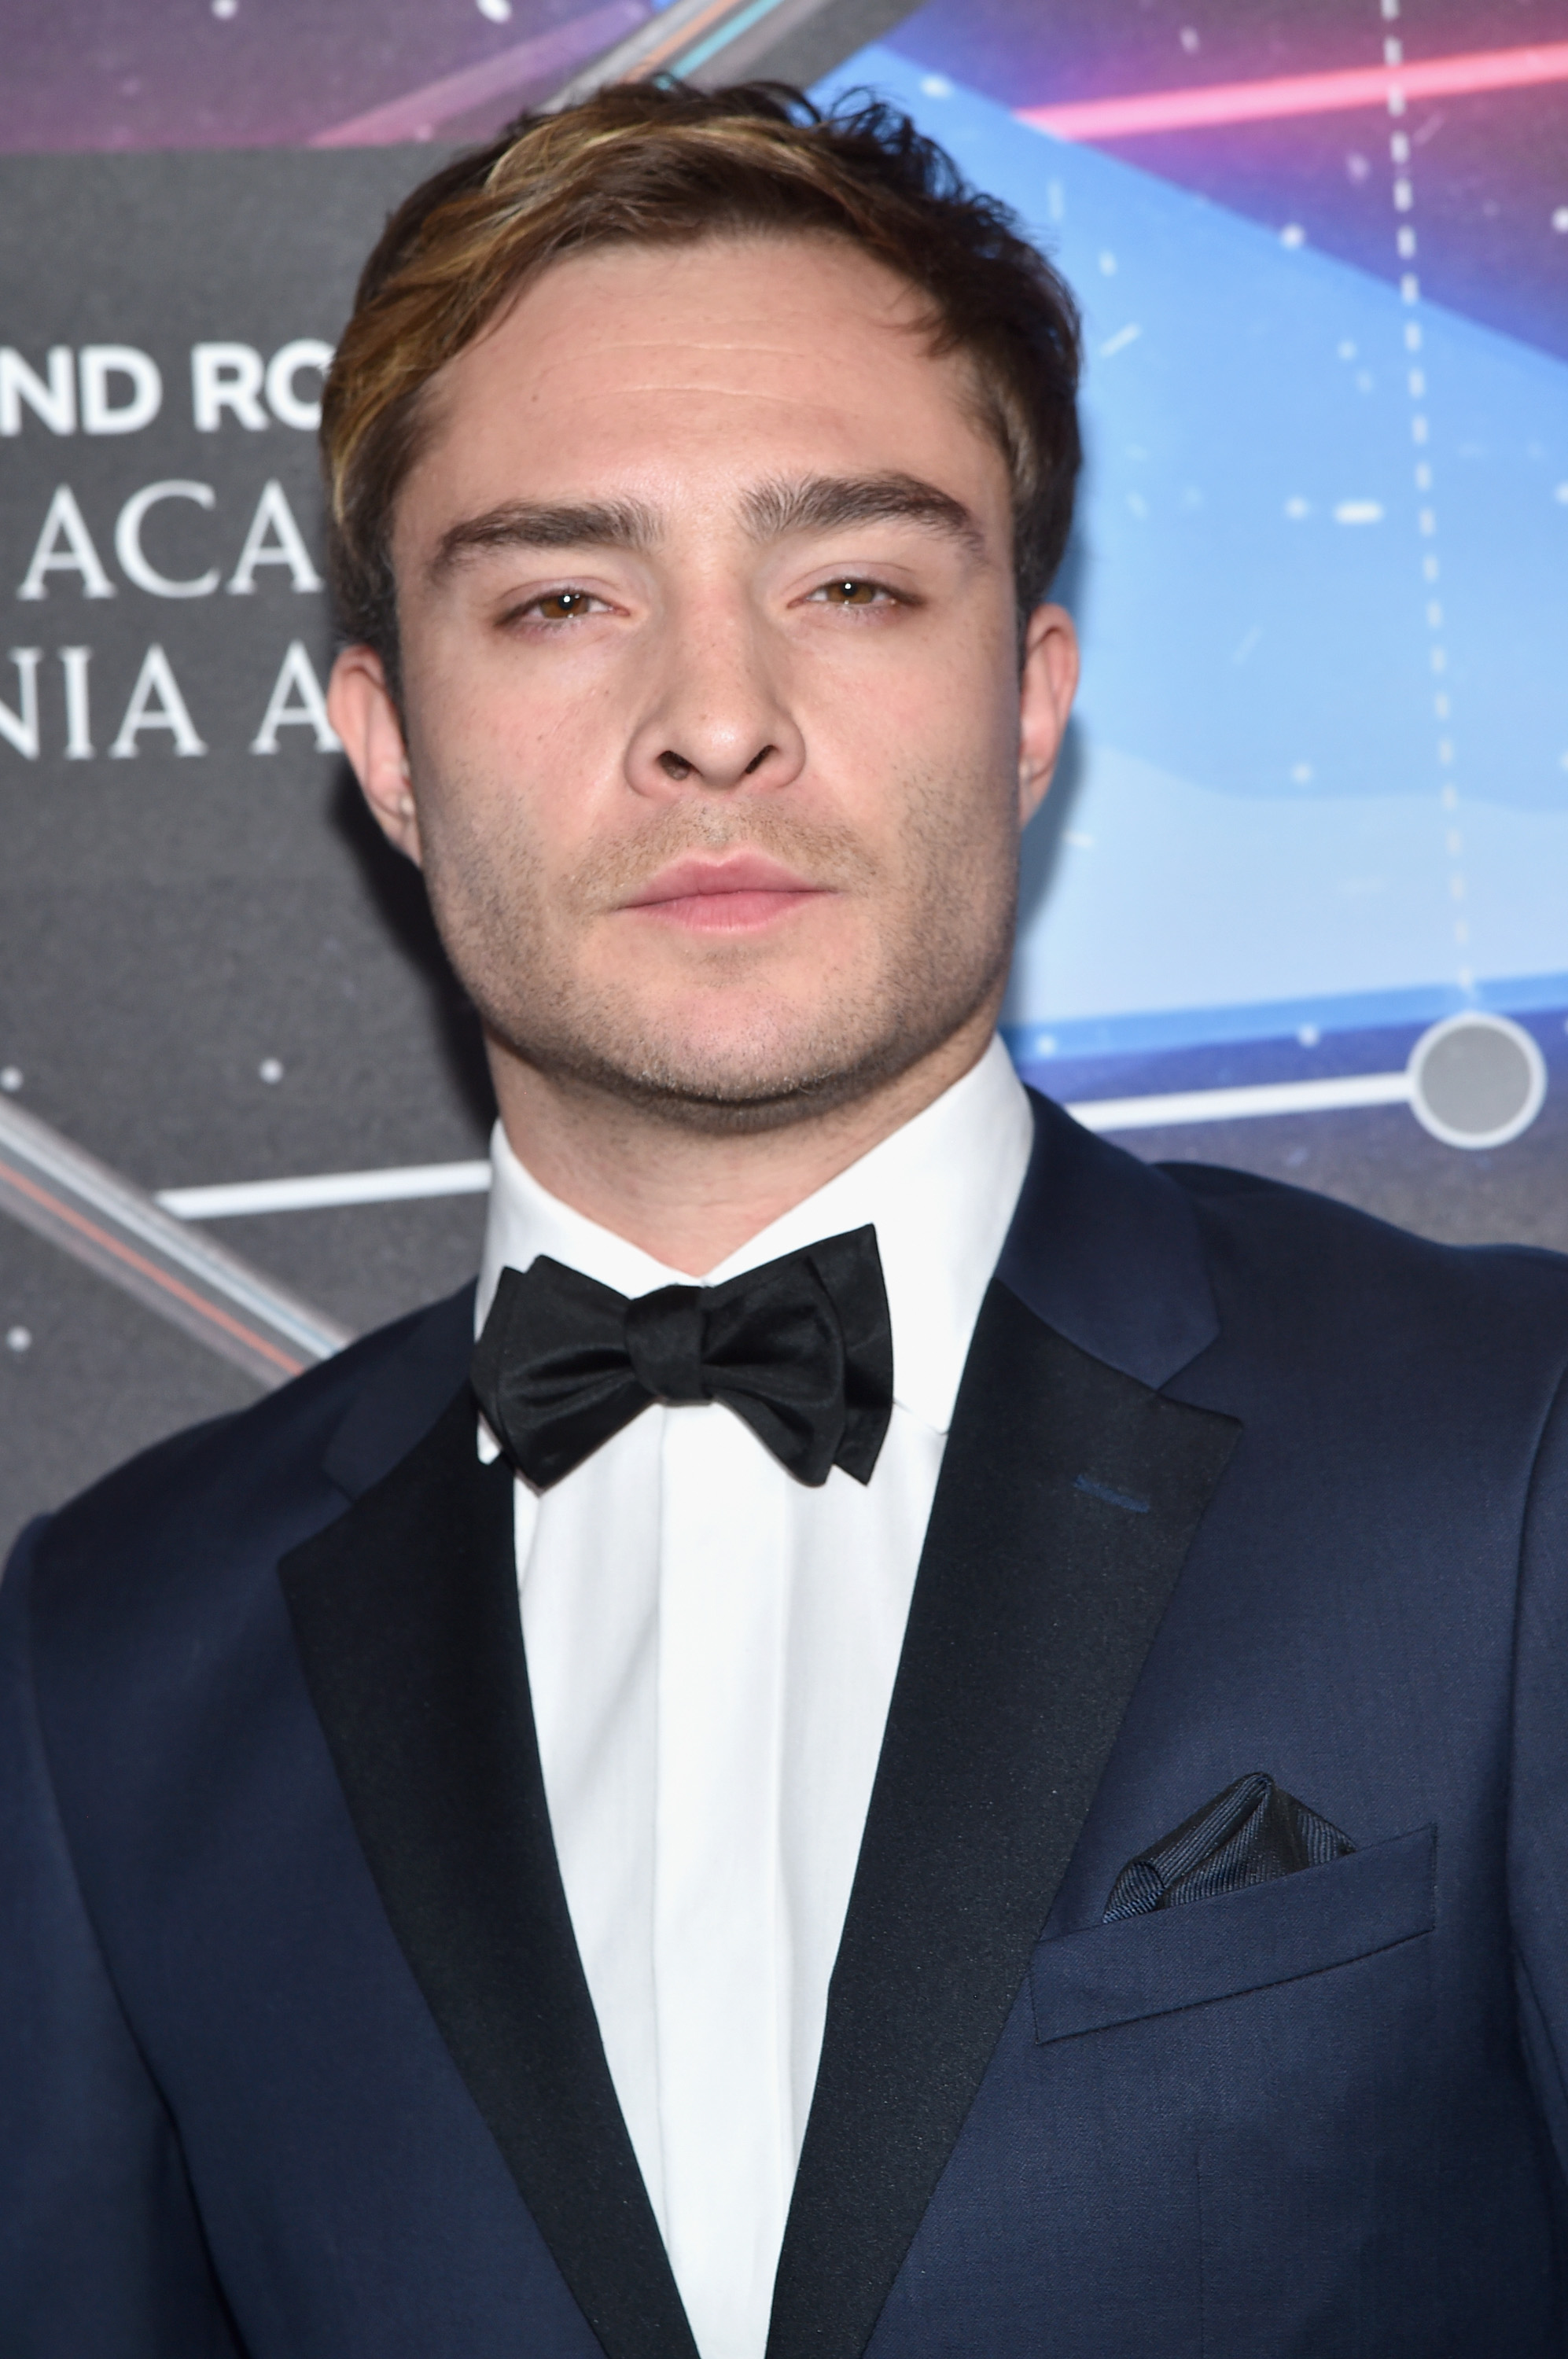 Ed westwick and leighton meester dating in real life 10